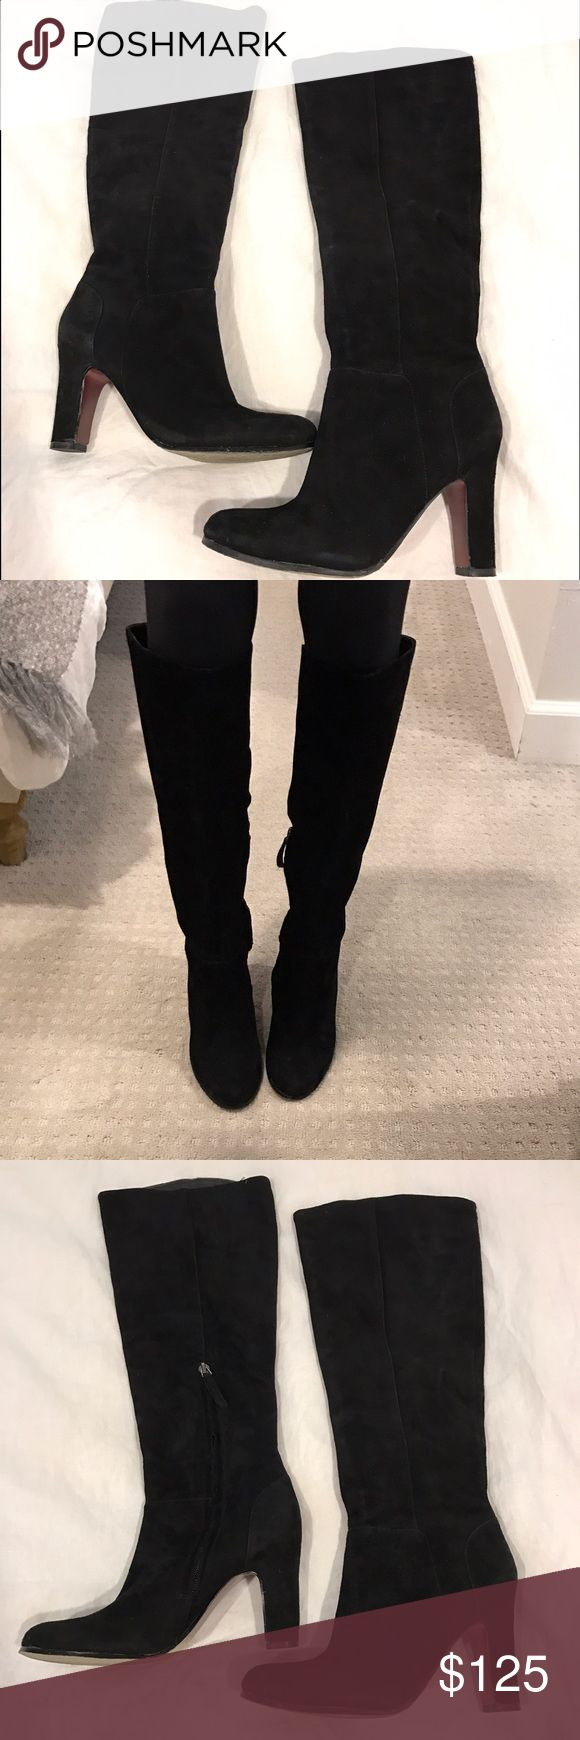 Selling this Sam Edelman black suede boots on Poshmark! My username is: brittnyguarine. #shopmycloset #poshmark #fashion #shopping #style #forsale #Sam Edelman #Shoes